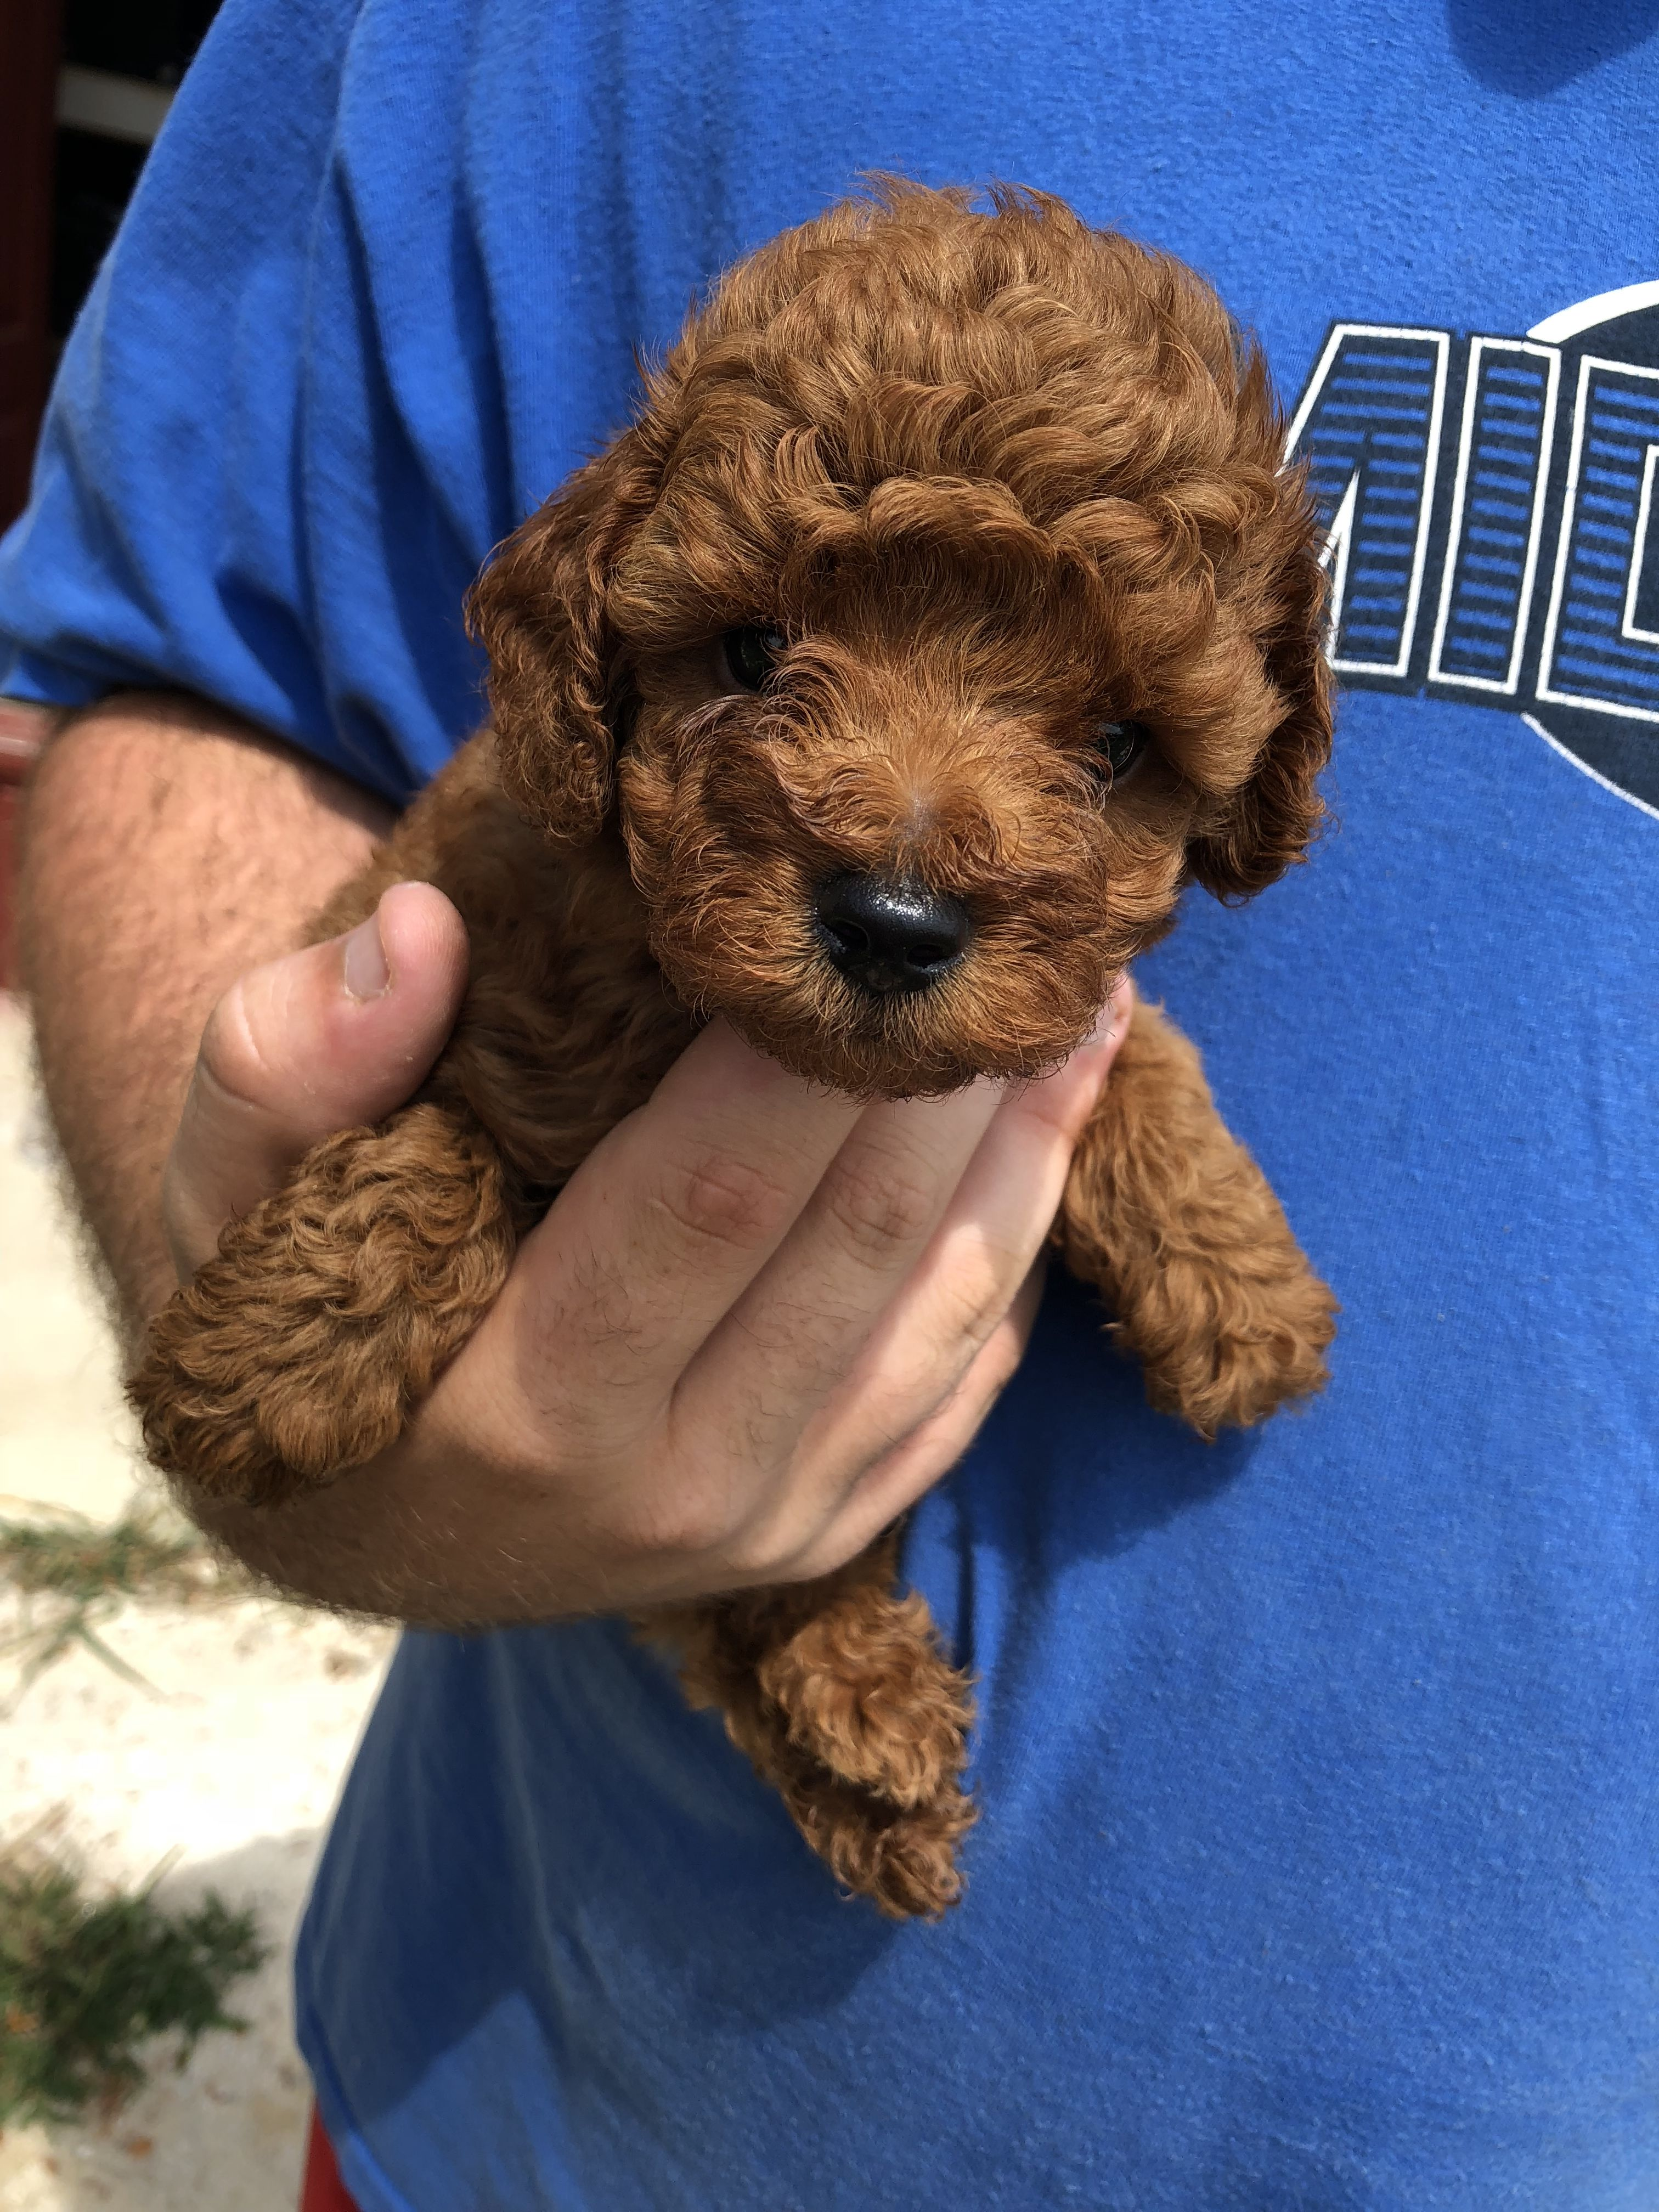 Red Toy Poodle Puppies For Sale Toy Poodle Puppies Poodle Puppies For Sale Small Fluffy Puppies